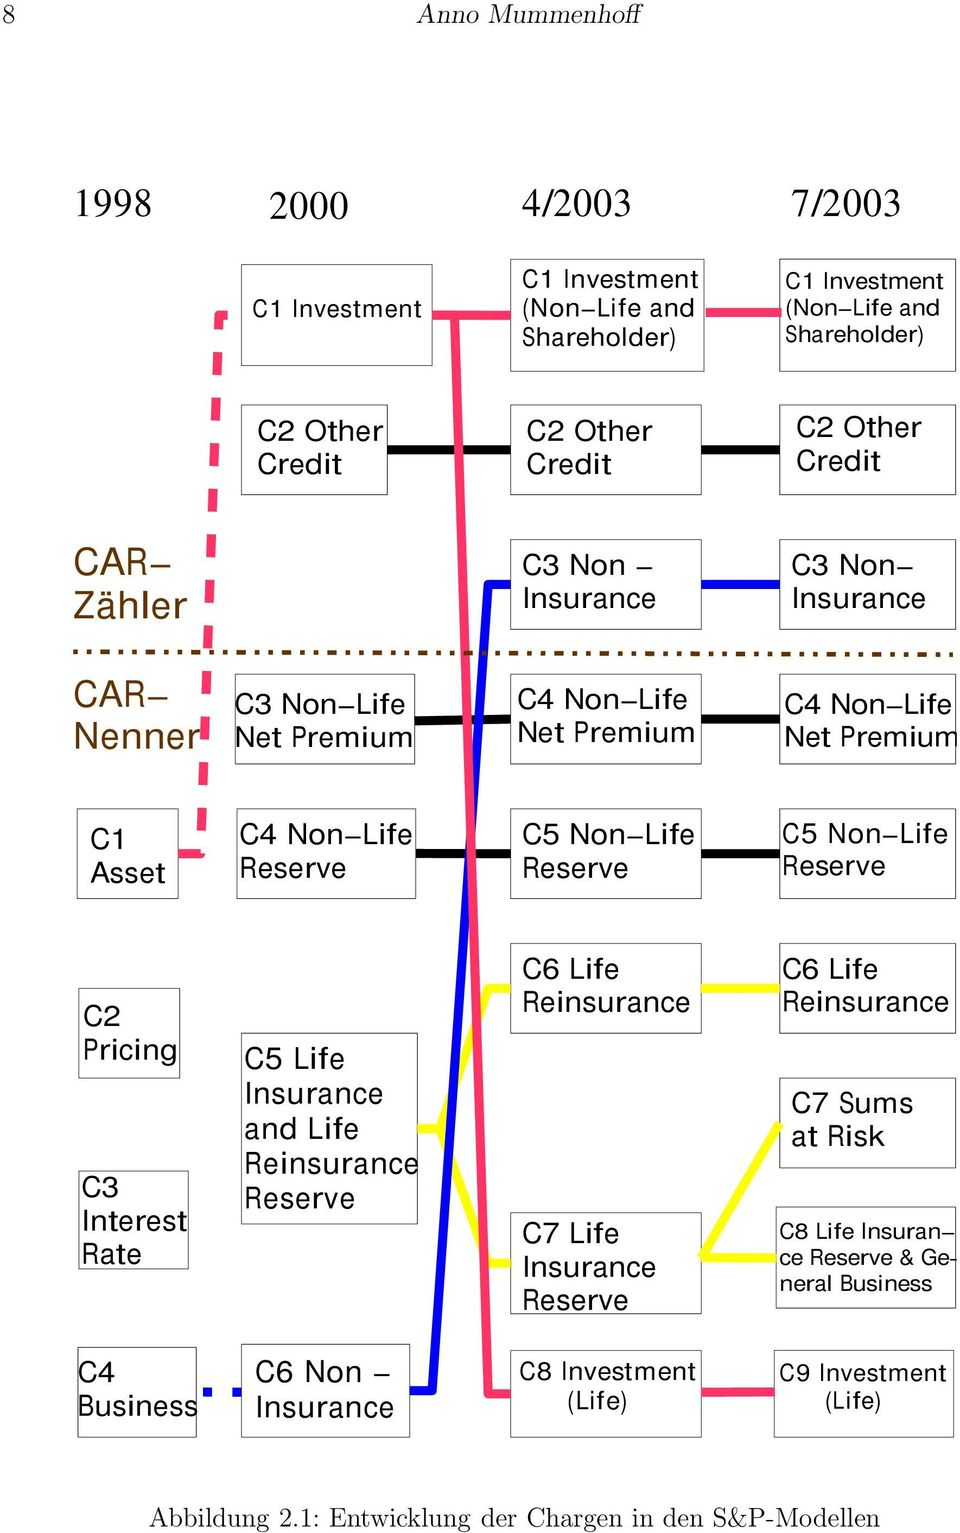 Reserve C5 Non Life Reserve C2 Pricing C3 Interest Rate C5 Life Insurance and Life Reinsurance Reserve C6 Life Reinsurance C7 Life Insurance Reserve C6 Life Reinsurance C7 Sums